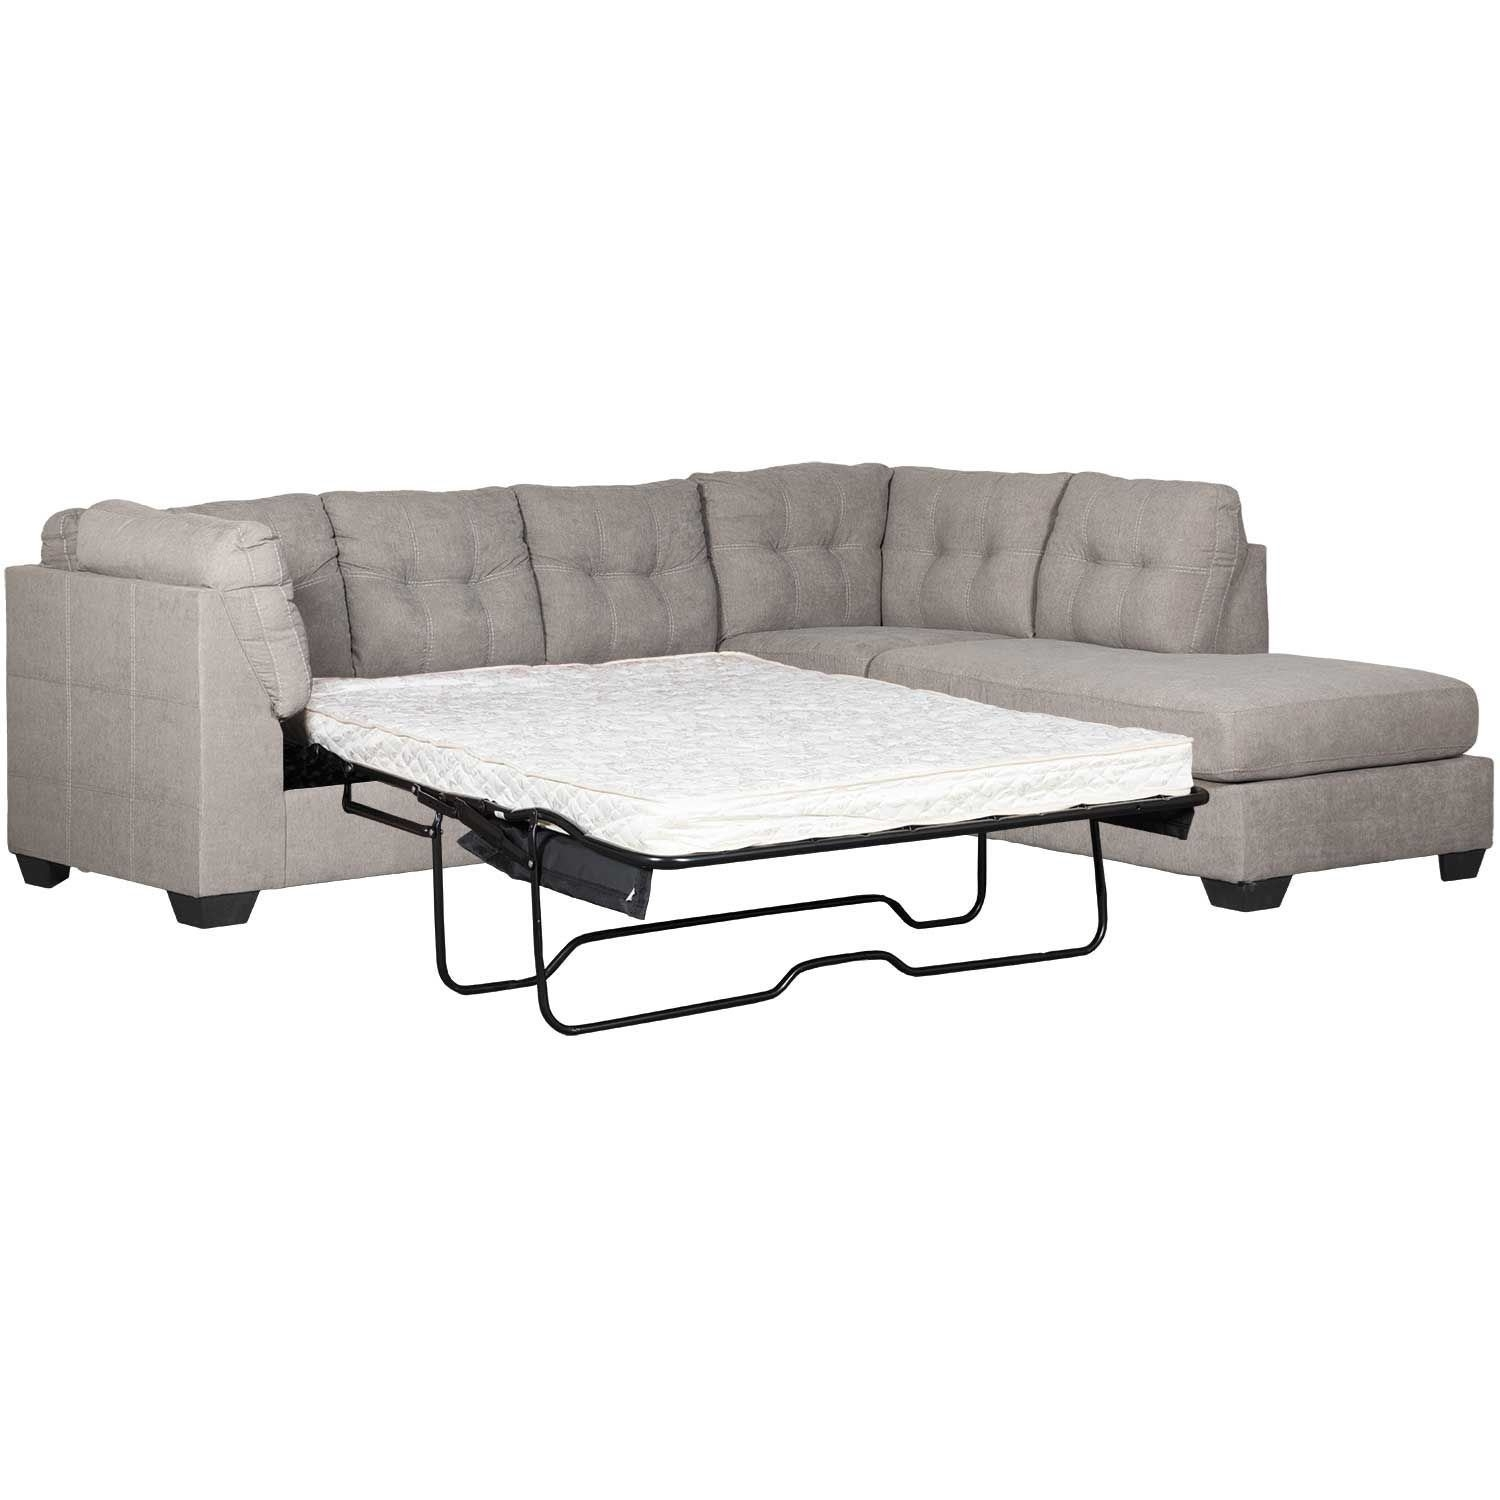 Maier Charcoal 2 Piece Sleeper Sectional With Raf Chaise | 4520017 In Meyer 3 Piece Sectionals With Laf Chaise (Image 14 of 25)